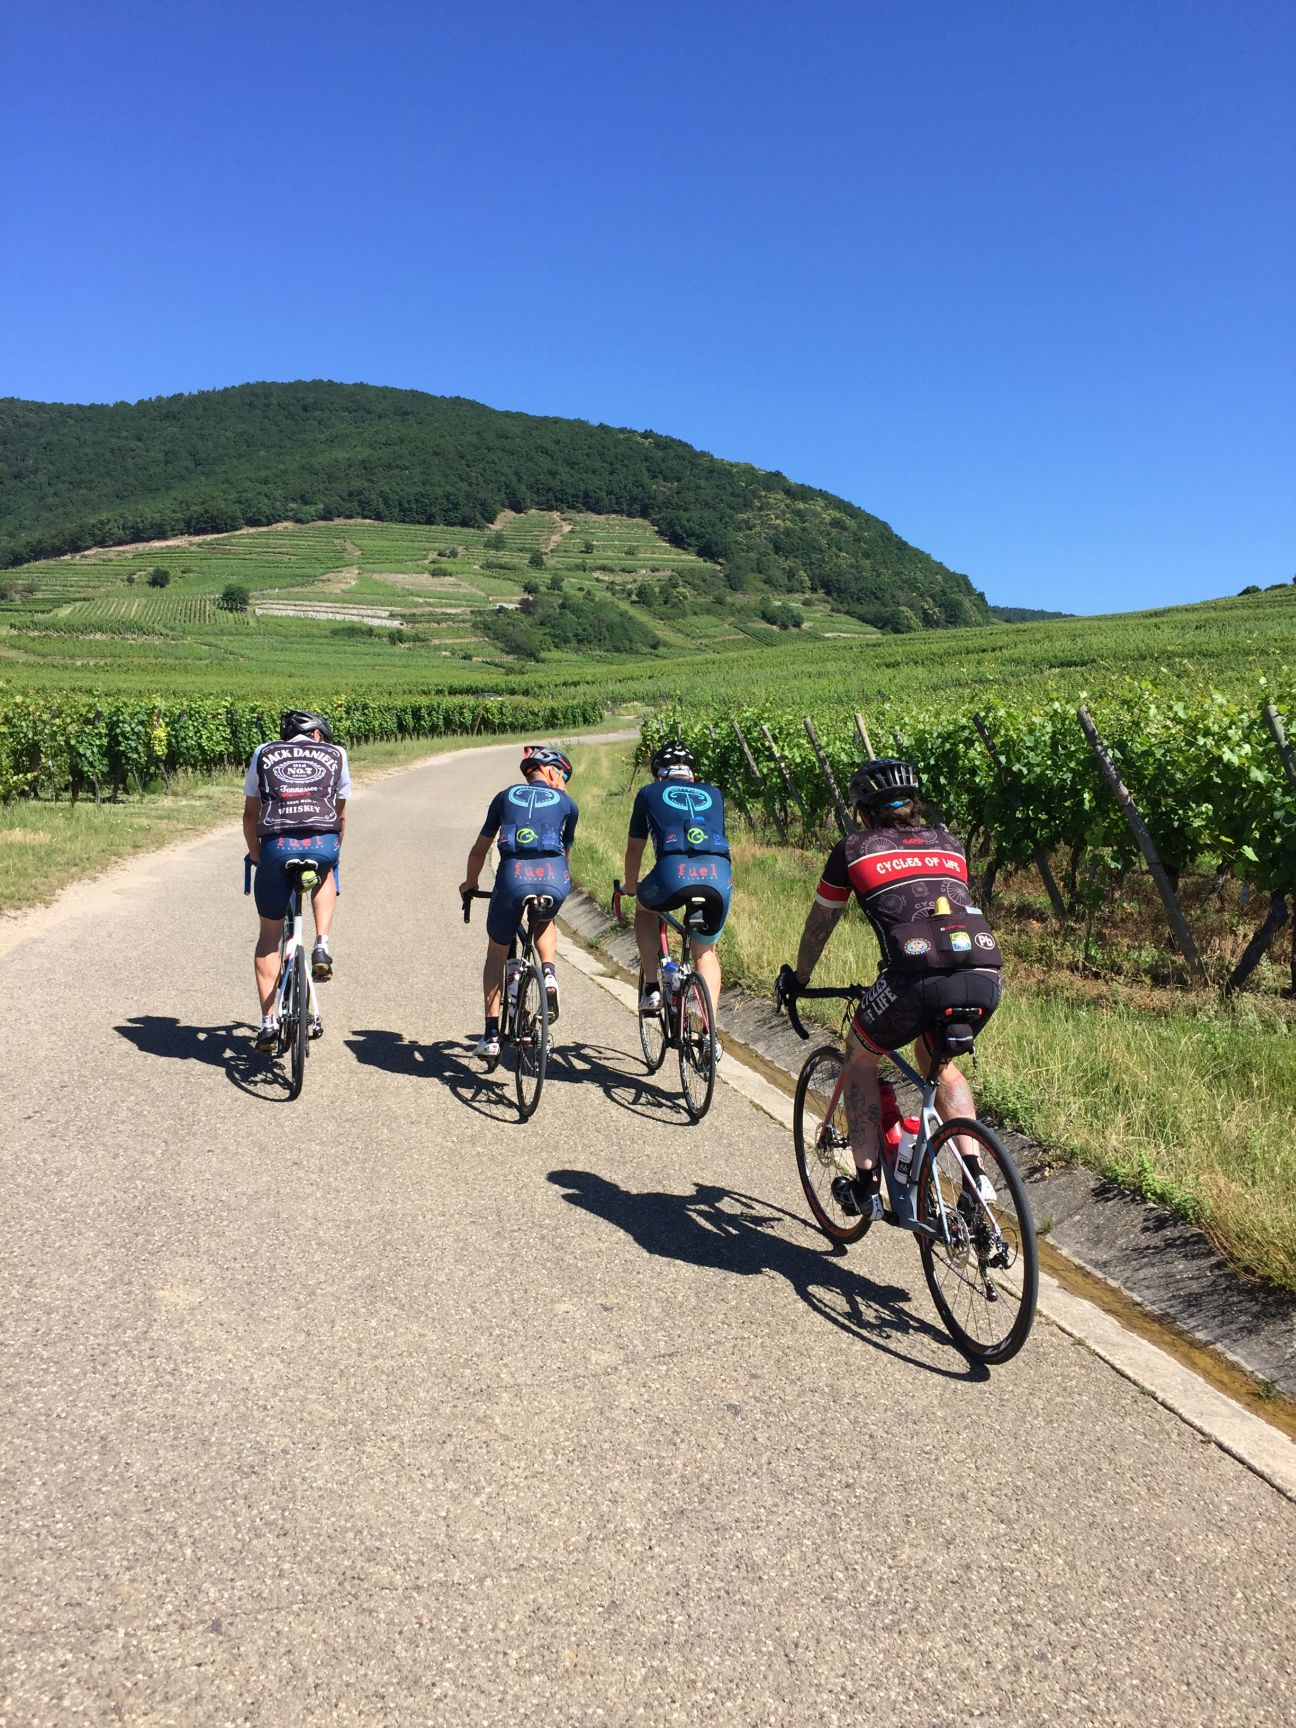 Through vineyards we rode and from its fruit we drank